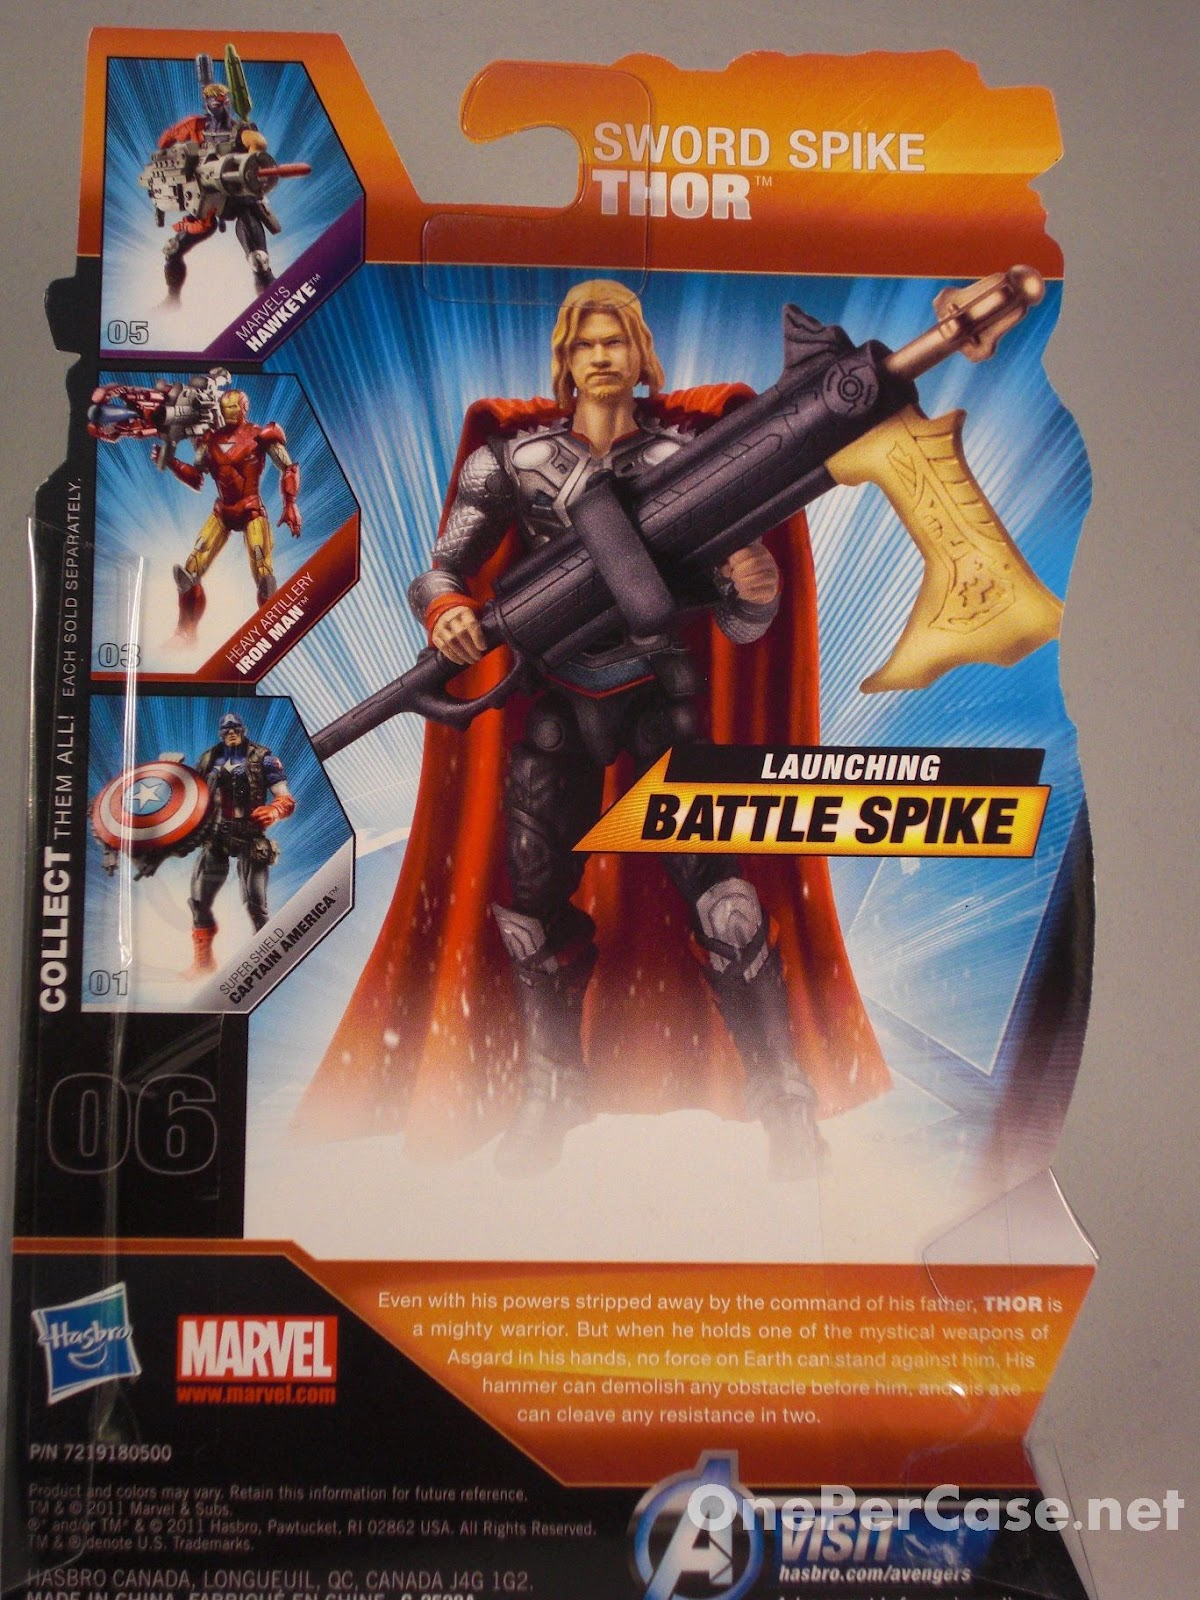 One Per Case: The Avengers: Sword Spike Thor #06